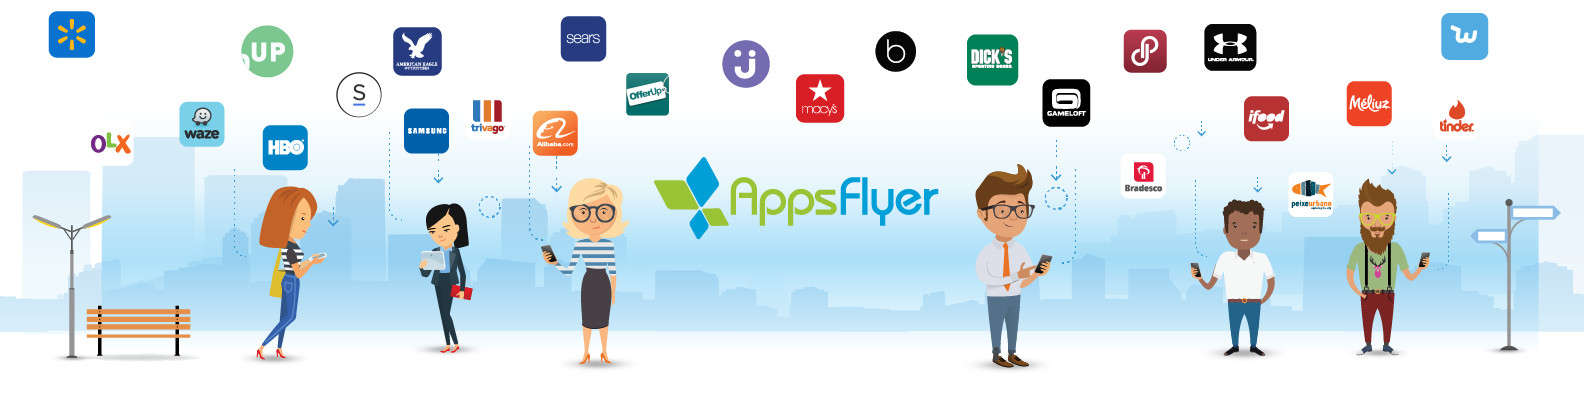 Received IDR 2.9 T Capital, Startup from US AppsFlyer Ready to Expand to Indonesia